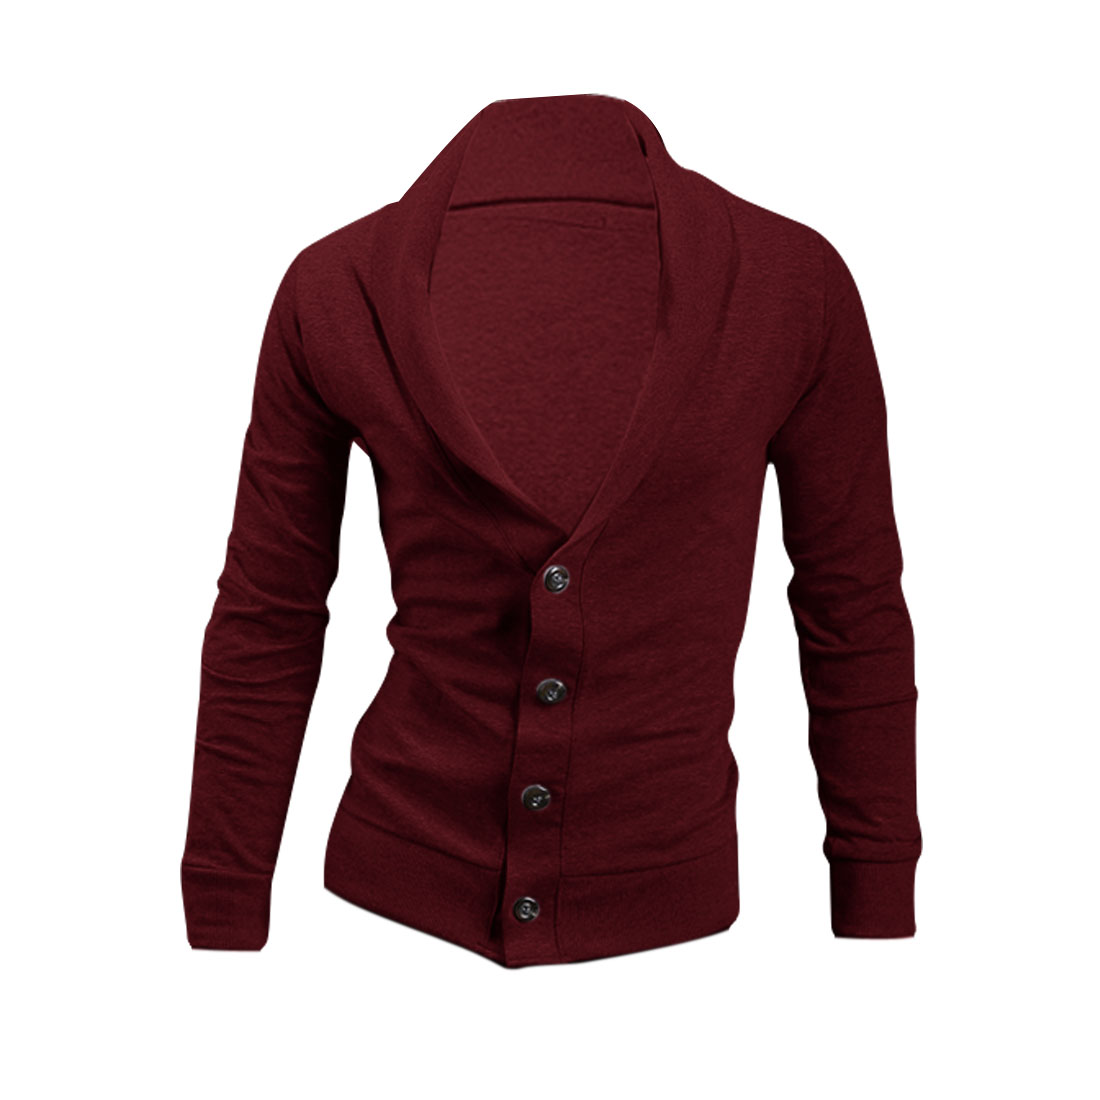 Men Button Down Long Sleeve Ribbing Cardigan Burgundy L